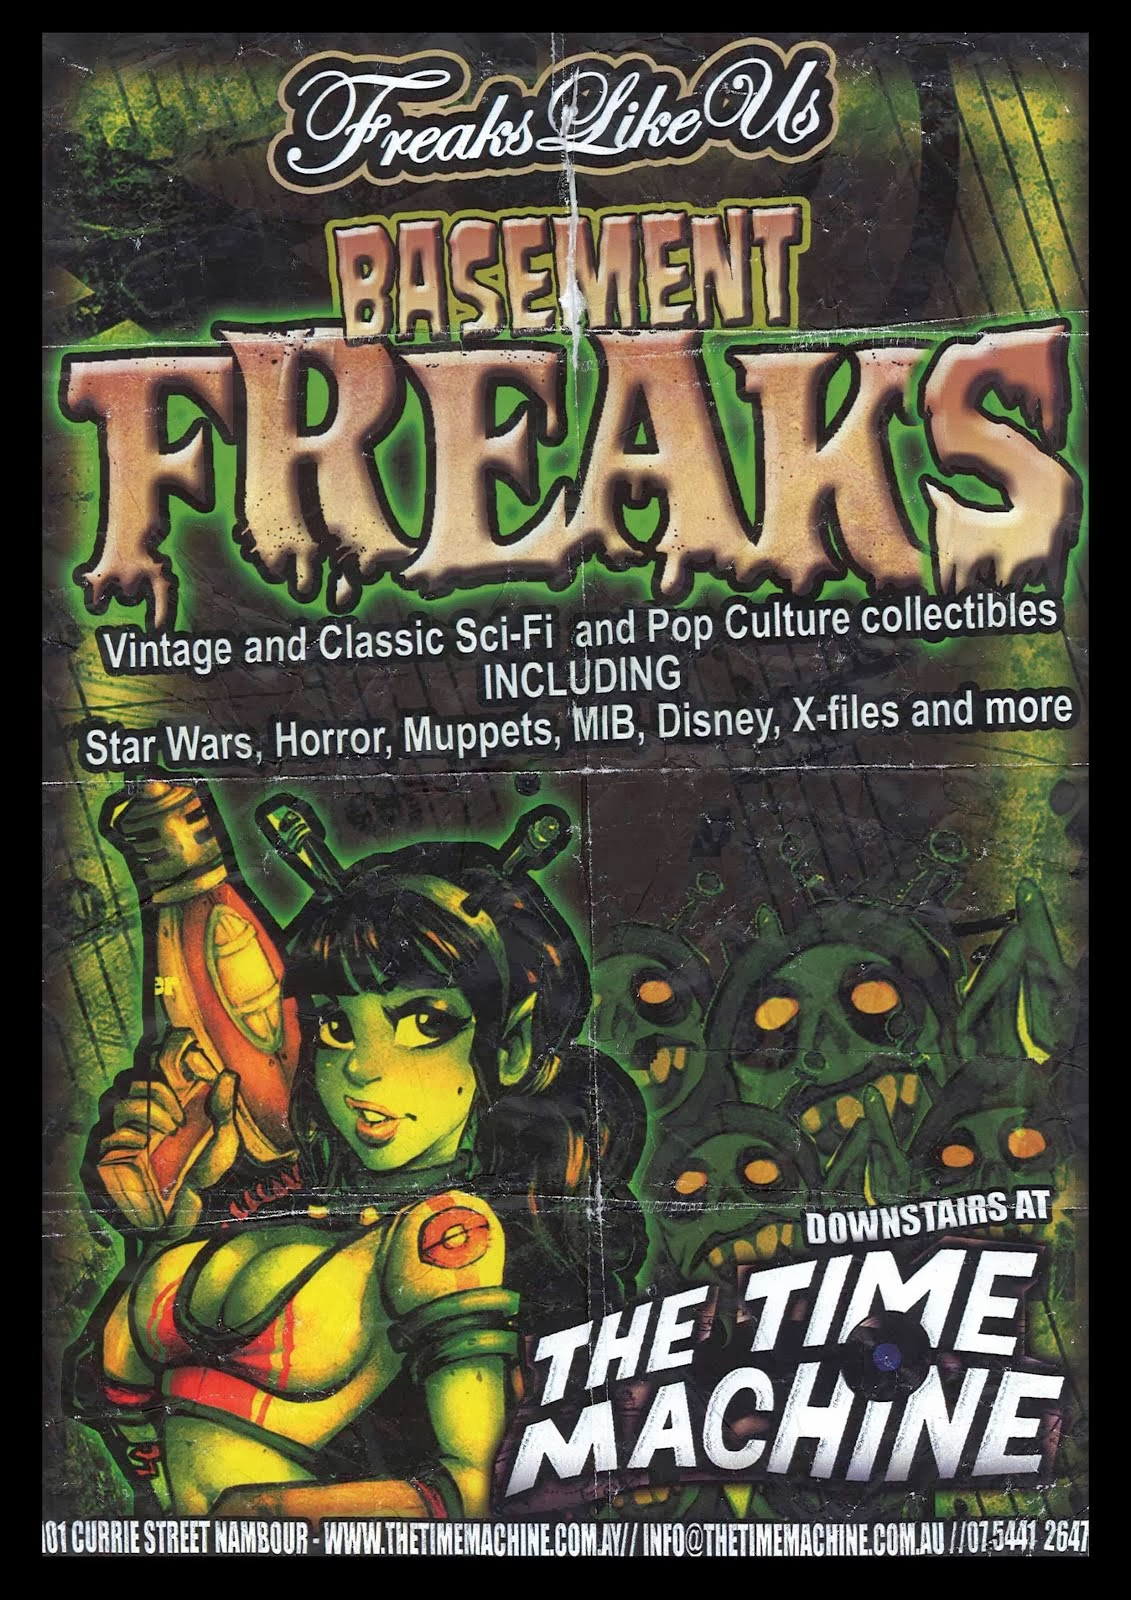 Basement Freaks at the Time Machine